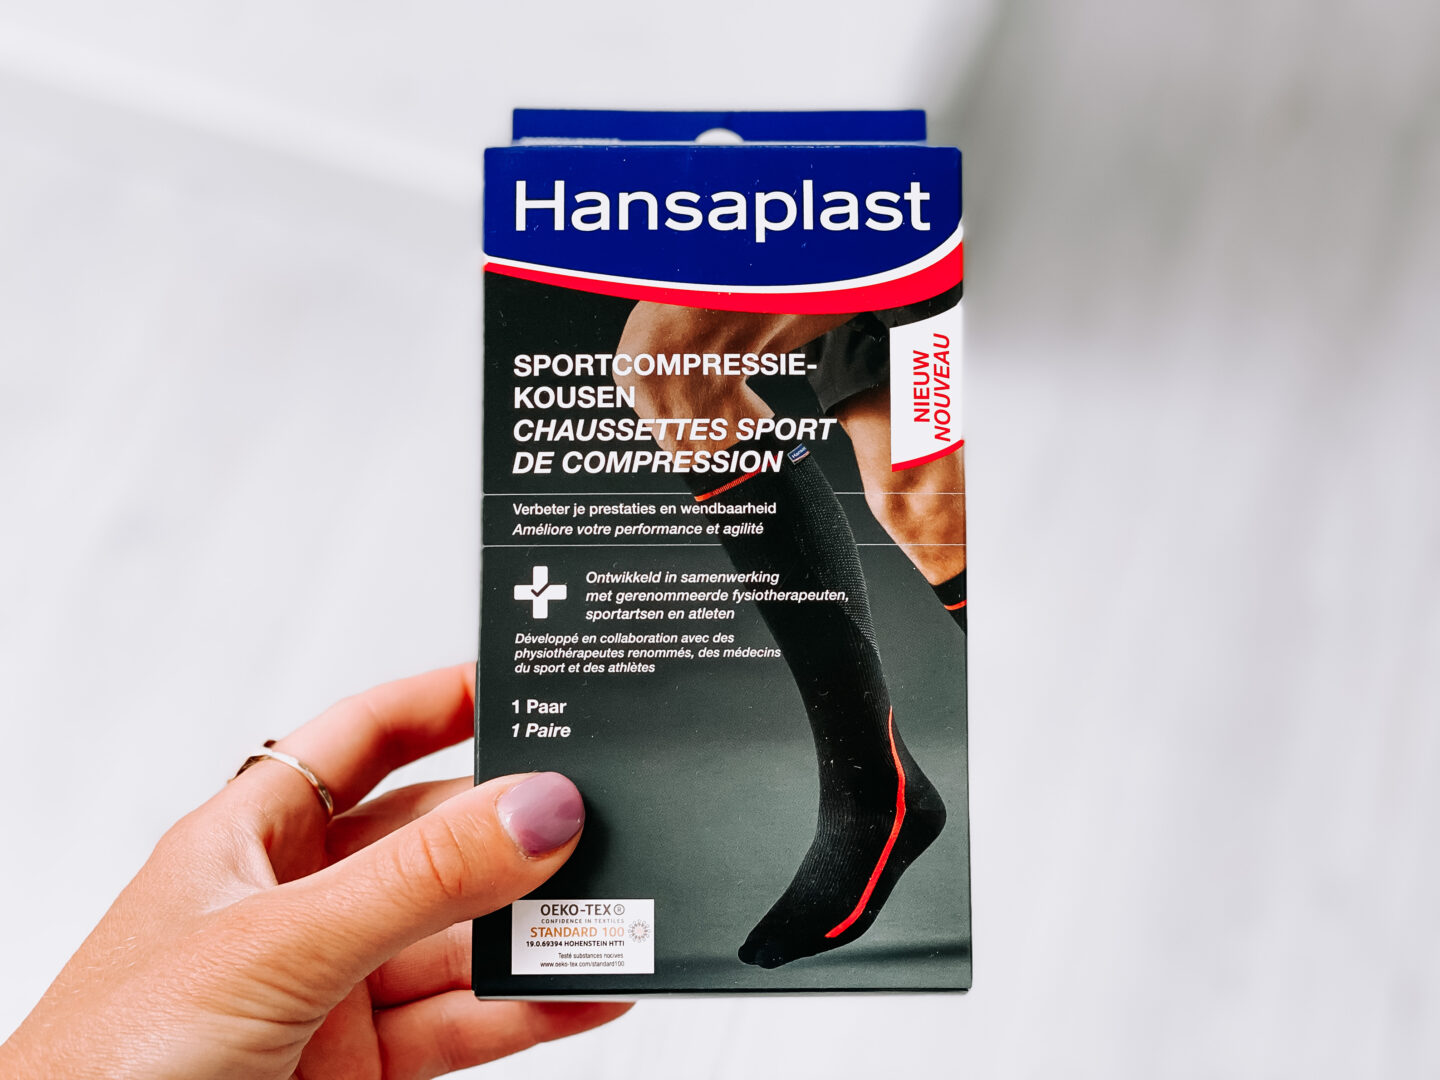 Review: Hansaplast Sportcompressiekousen